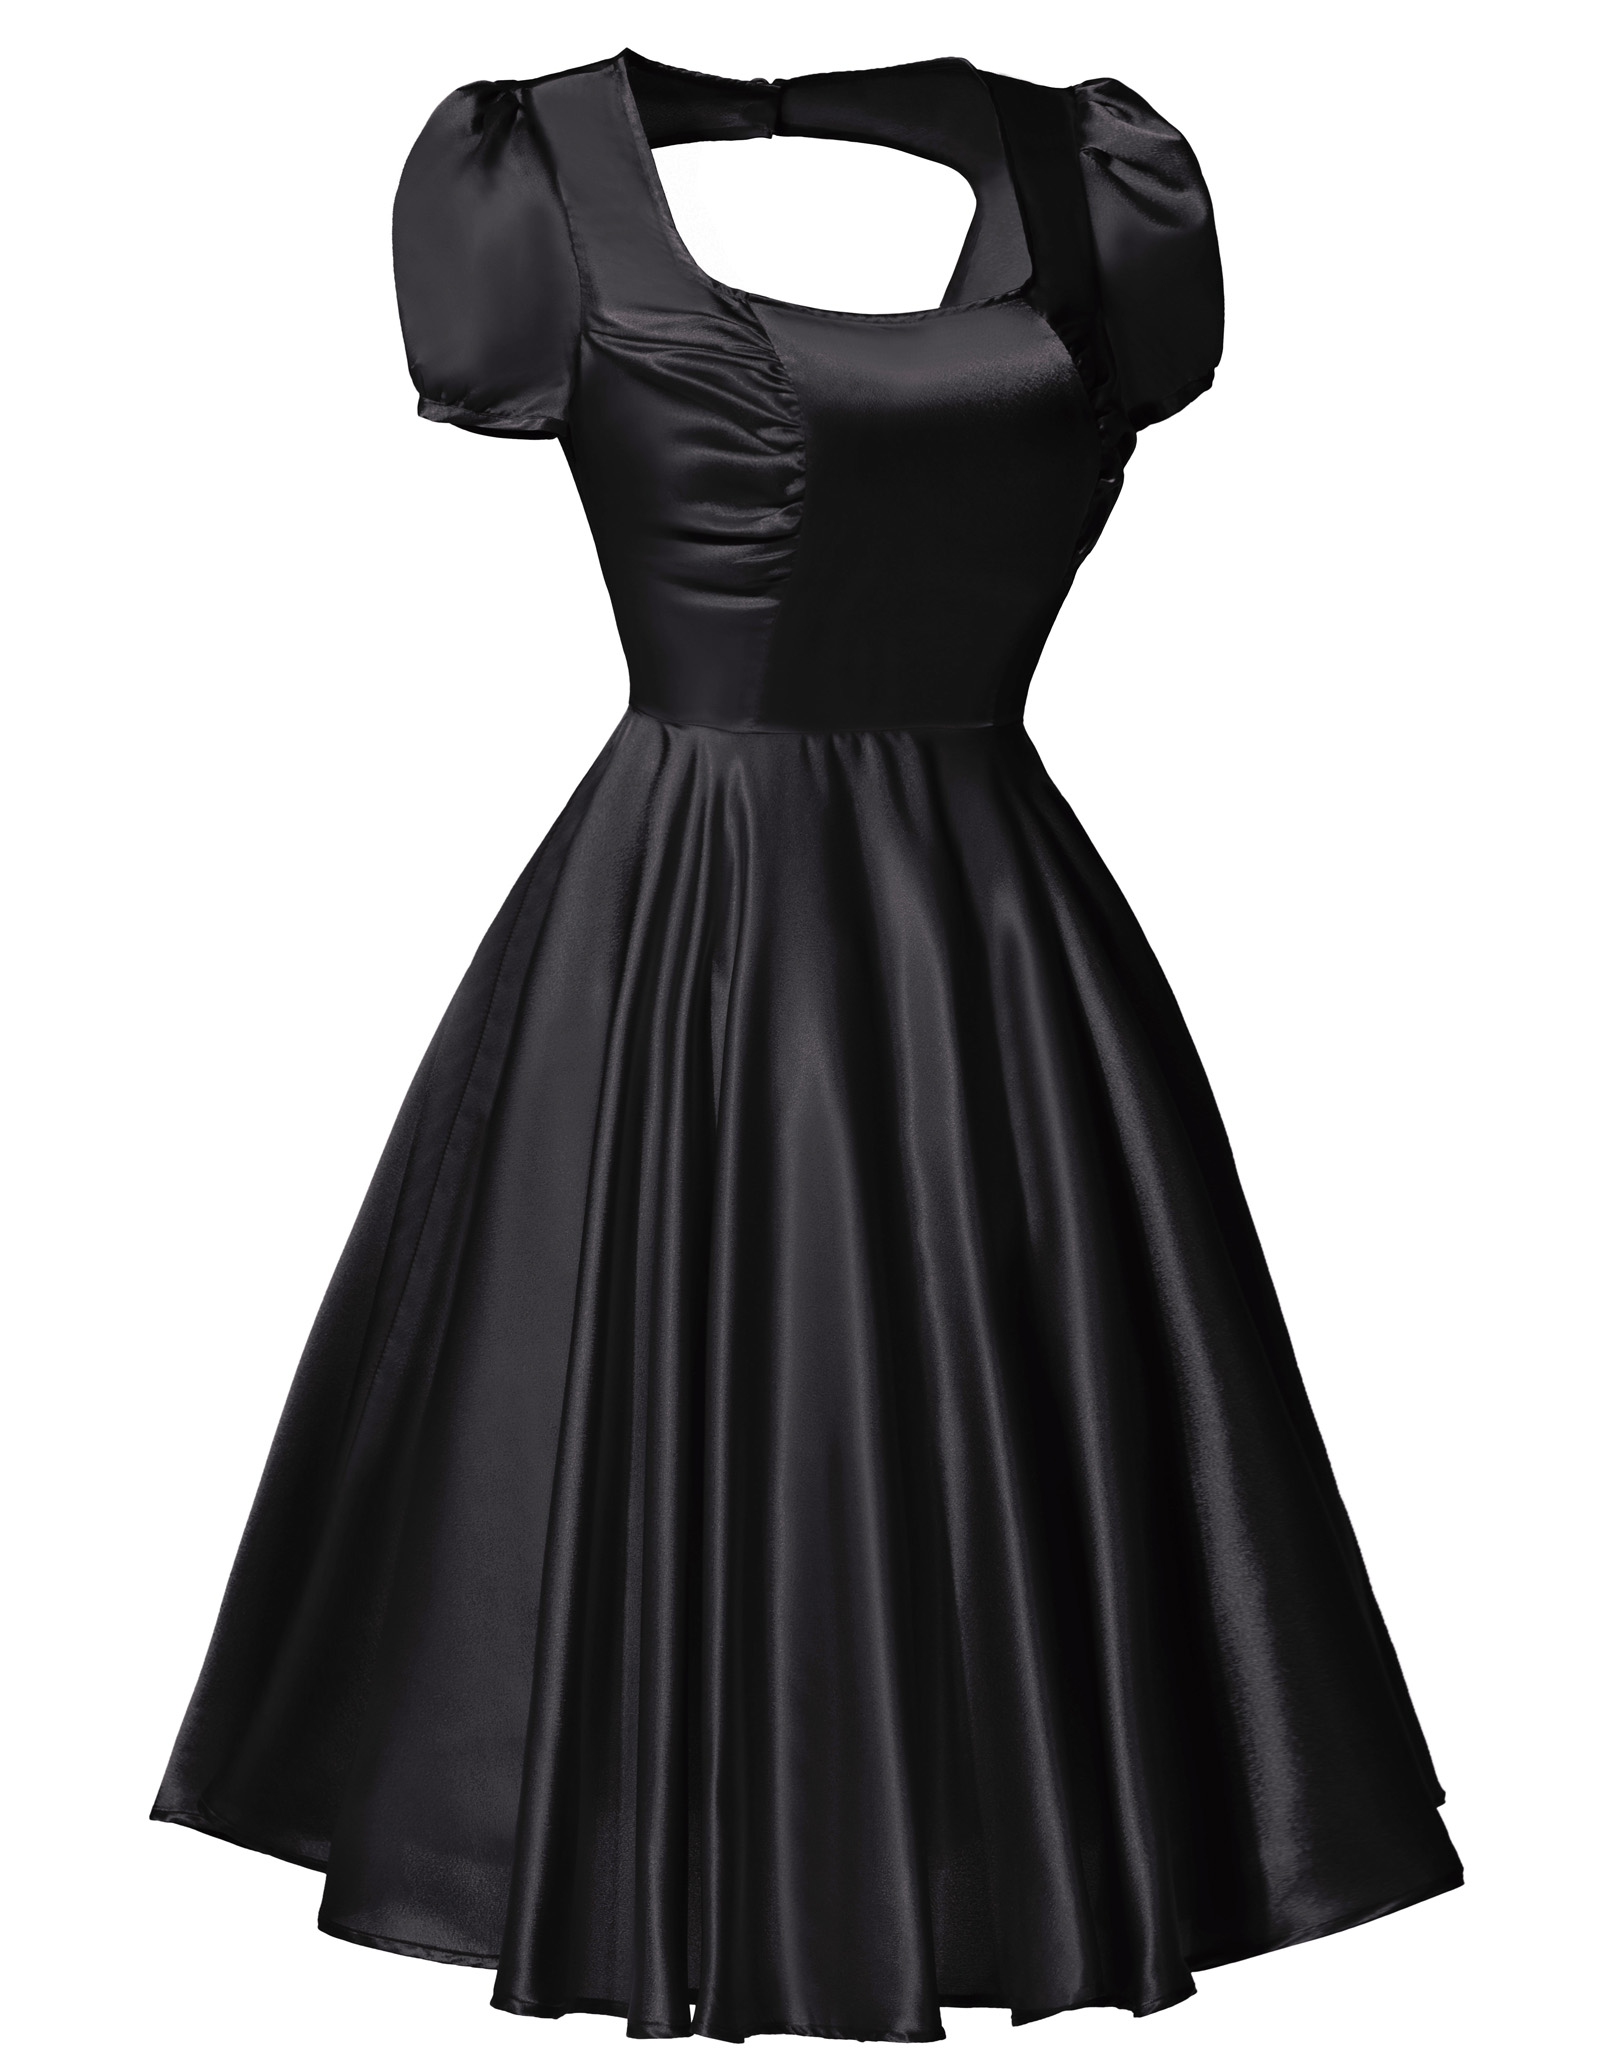 Clearance Vintage Style 50s 60s Tea Swing Pinup Retro Evening Party Picnic Dress